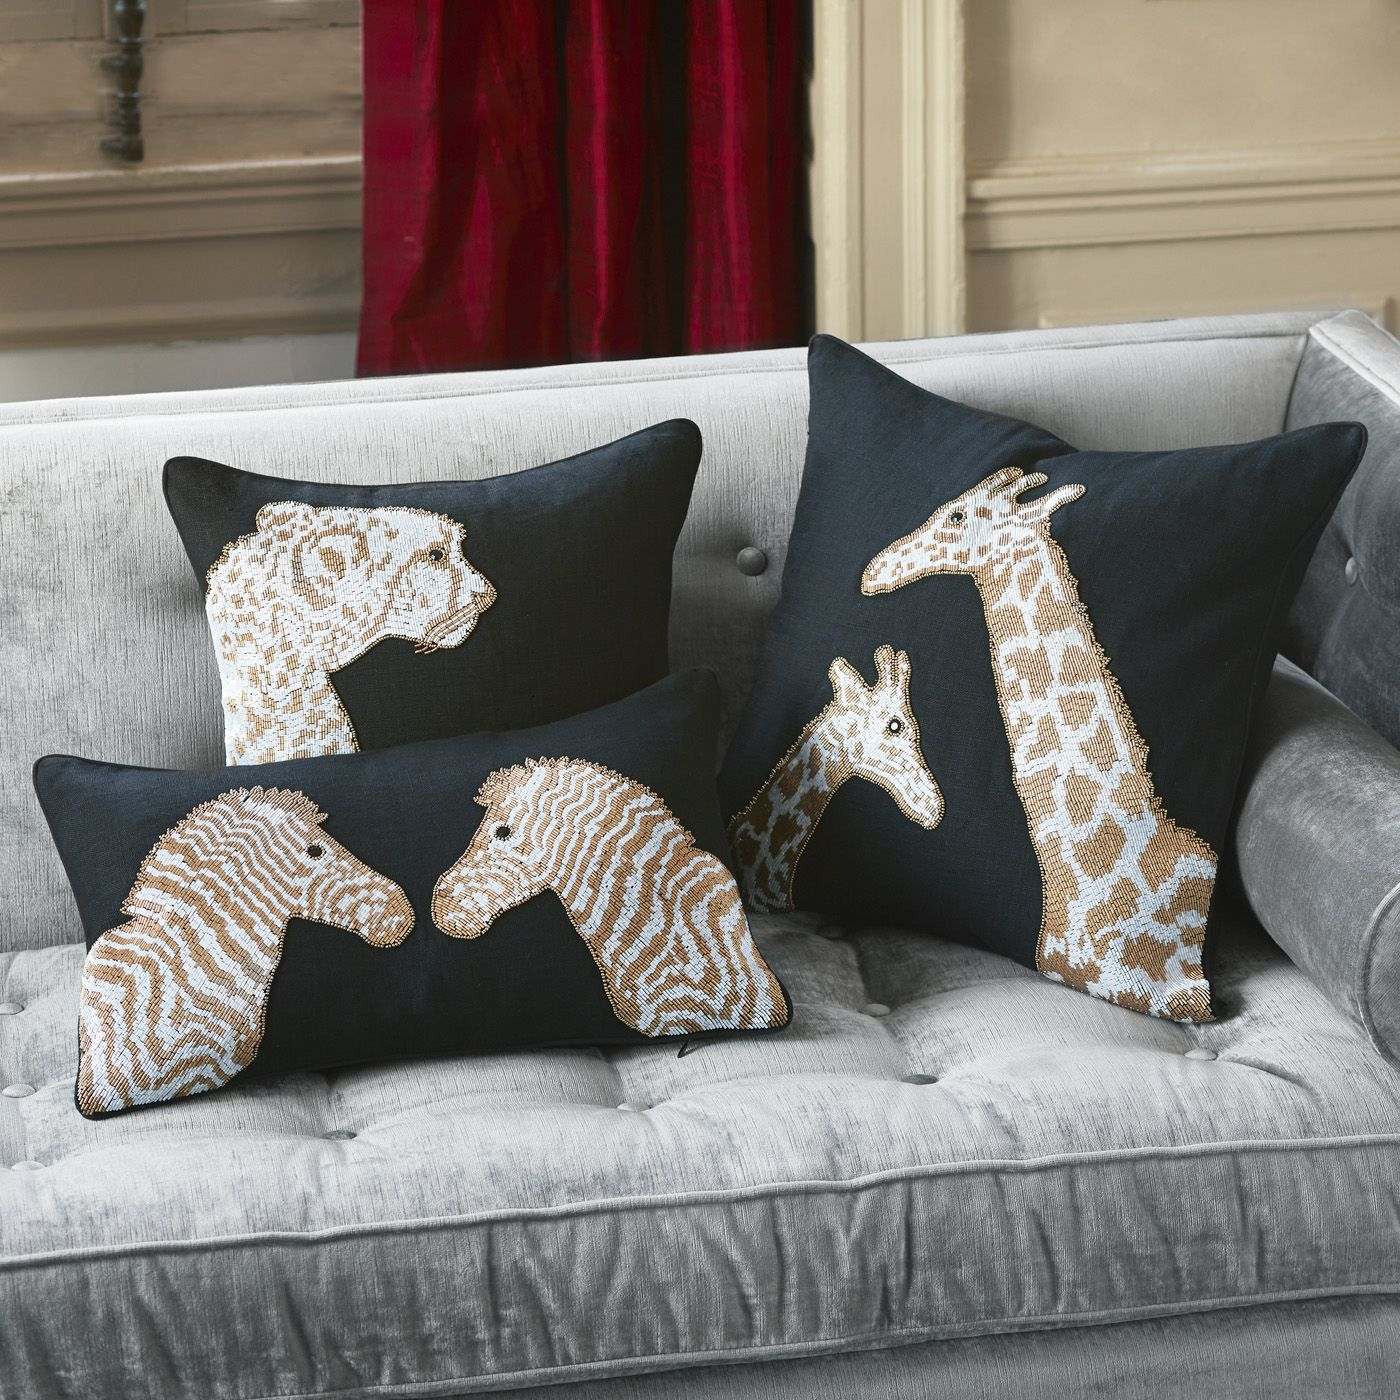 new img gibson got one that i pillow kings pink lane chic my pillows dana from just leopard love chinoiserie